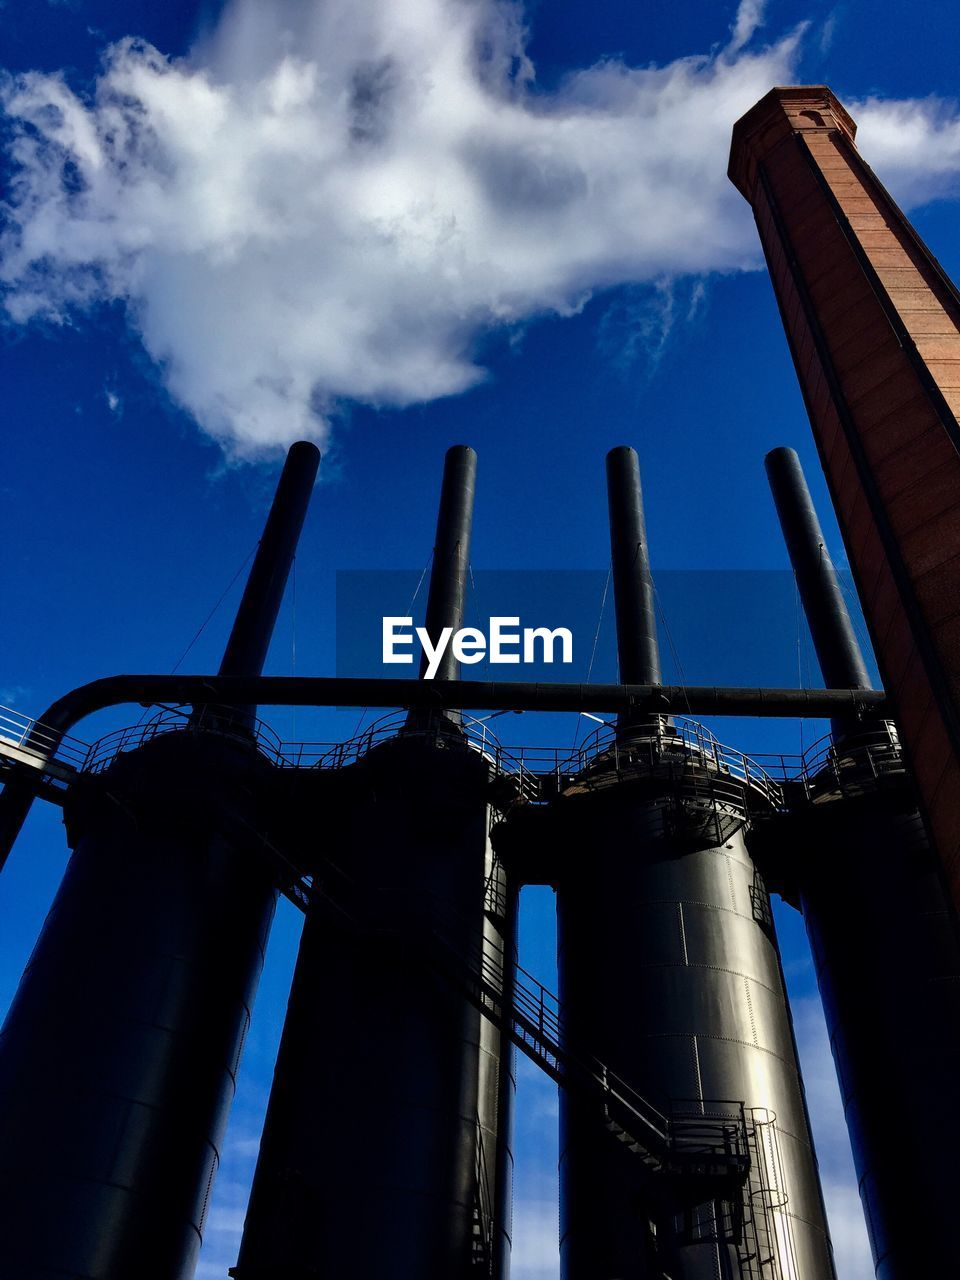 sky, cloud - sky, low angle view, industry, nature, factory, metal, built structure, no people, architecture, day, fuel and power generation, building exterior, blue, outdoors, business, smoke stack, environment, environmental issues, travel, pollution